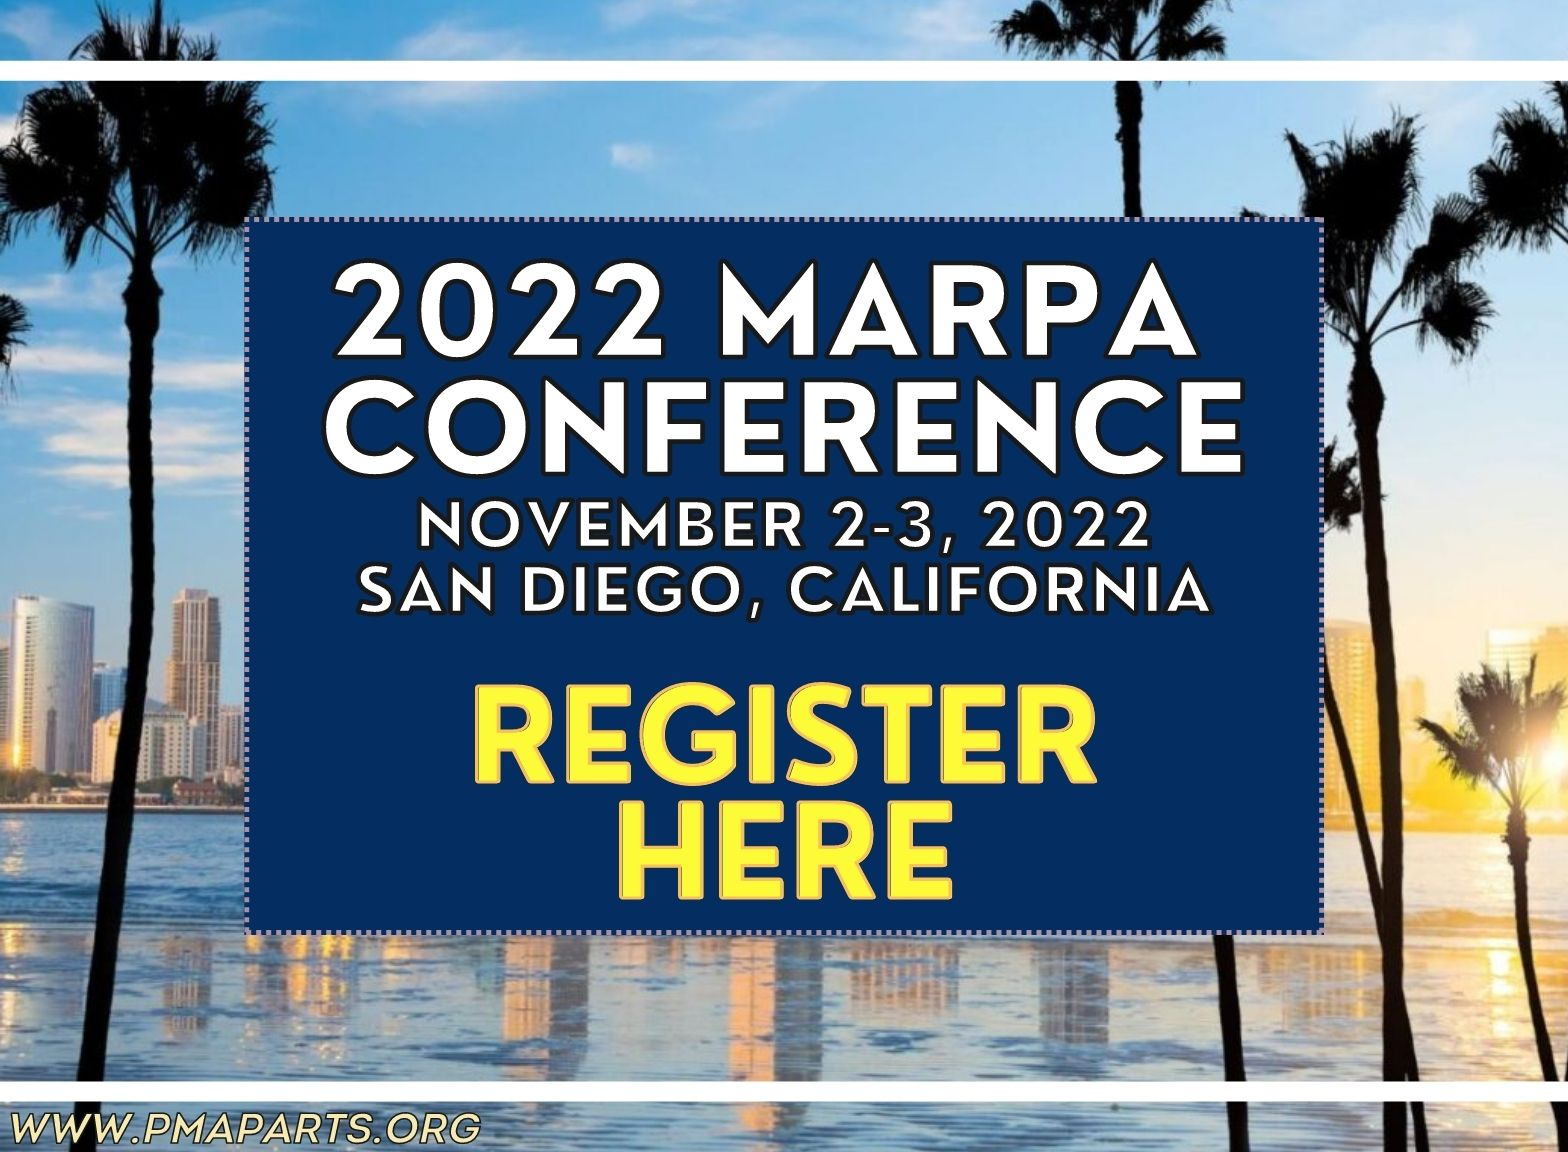 Register here for the 2021 MARPA Conference.